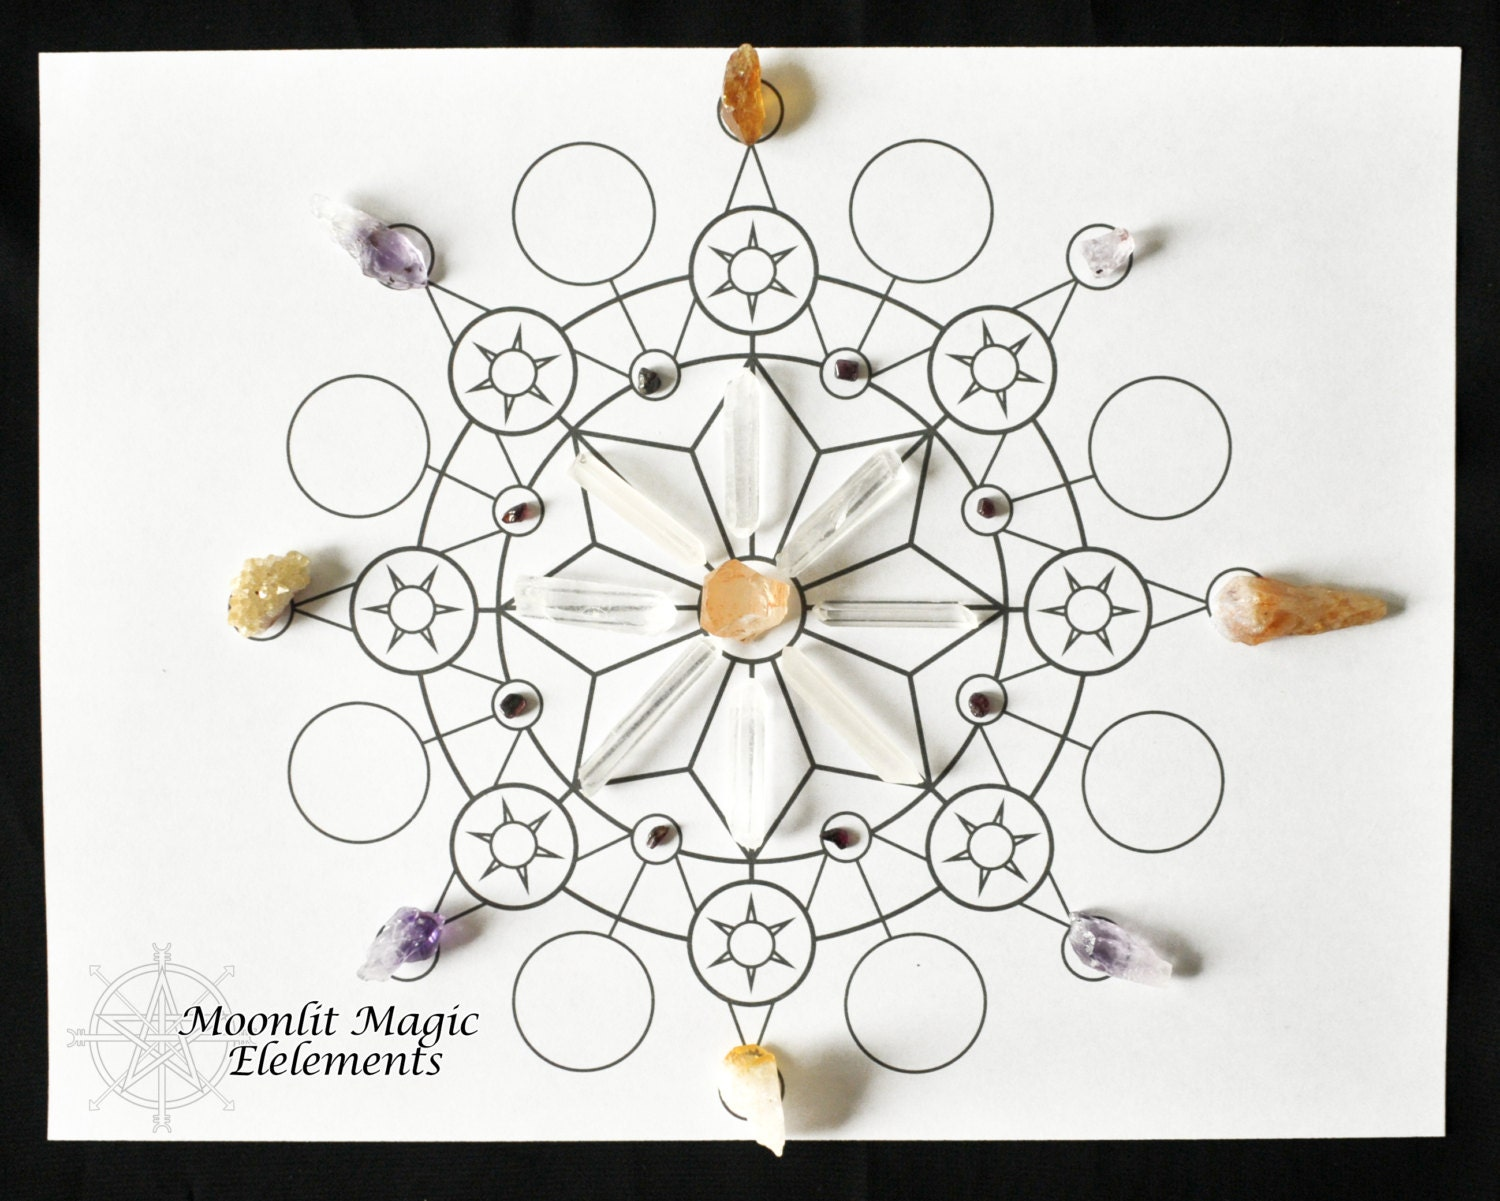 This is a picture of Wild Printable Crystal Grid